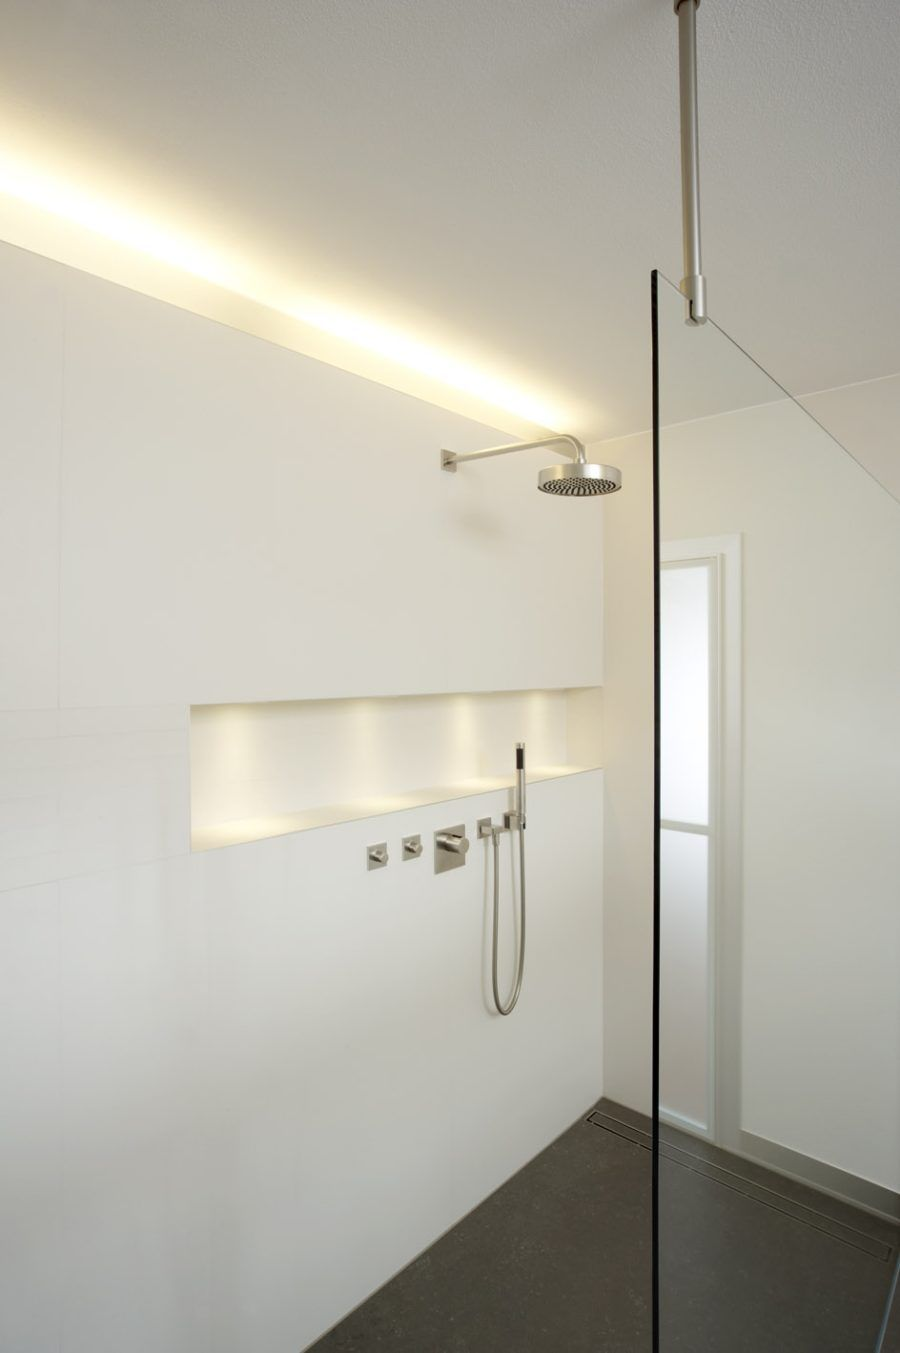 Make Your Home Beam And Glow With Built-in Lighting | Beams, Island ...